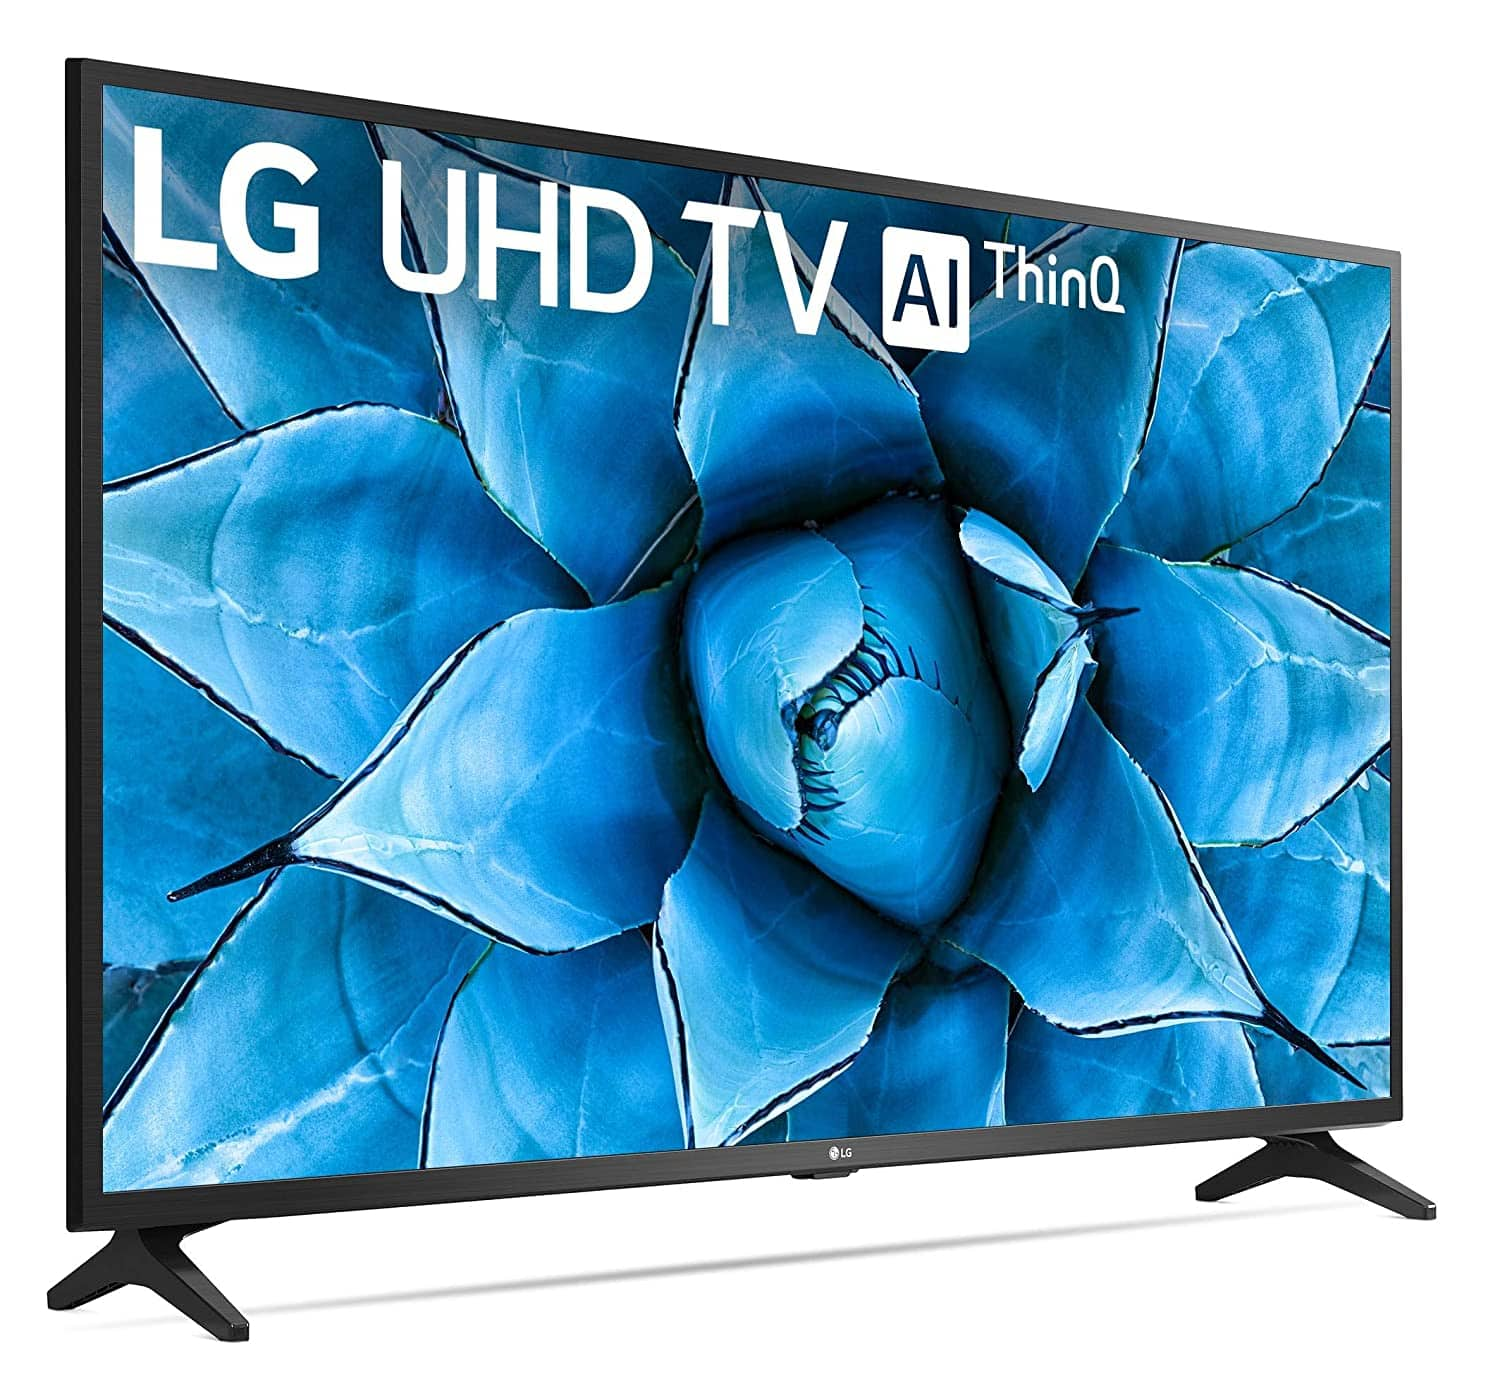 """LG 55UN7300PUF Alexa Built-In 55"""" 4K Ultra HD Smart LED TV (2020)~$379.99 With Coupon @ Amazon.com~Free Shipping!"""